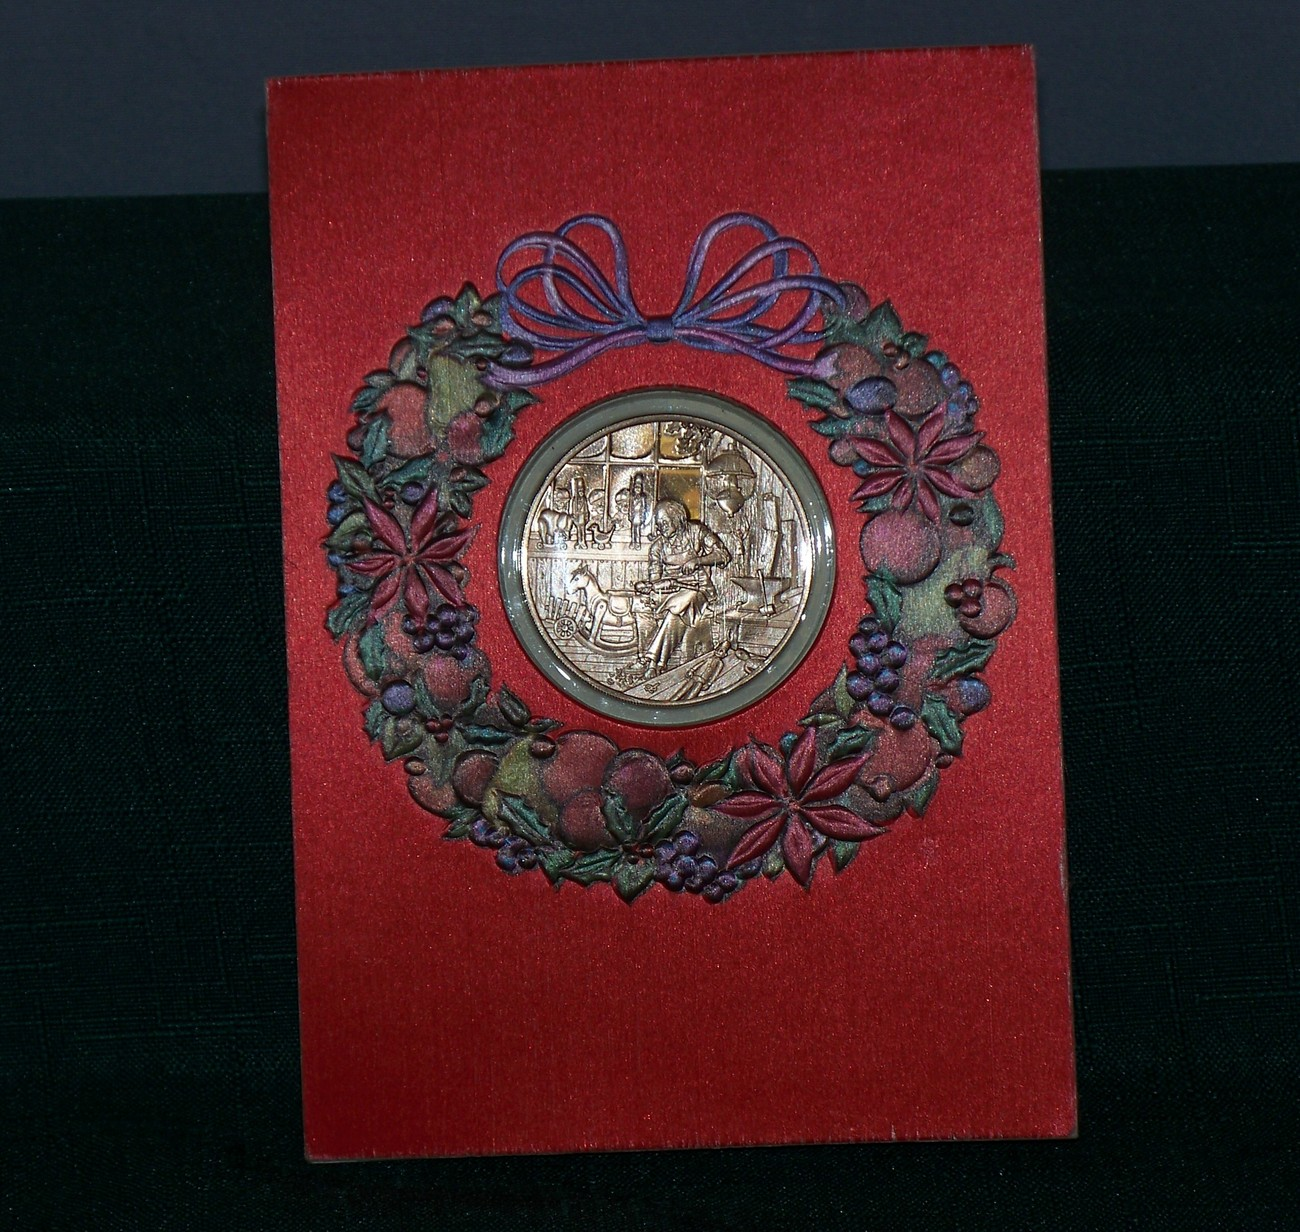 Franklin Mint The Toymaker's Shop Coin And Christmas Card 1976 VGC